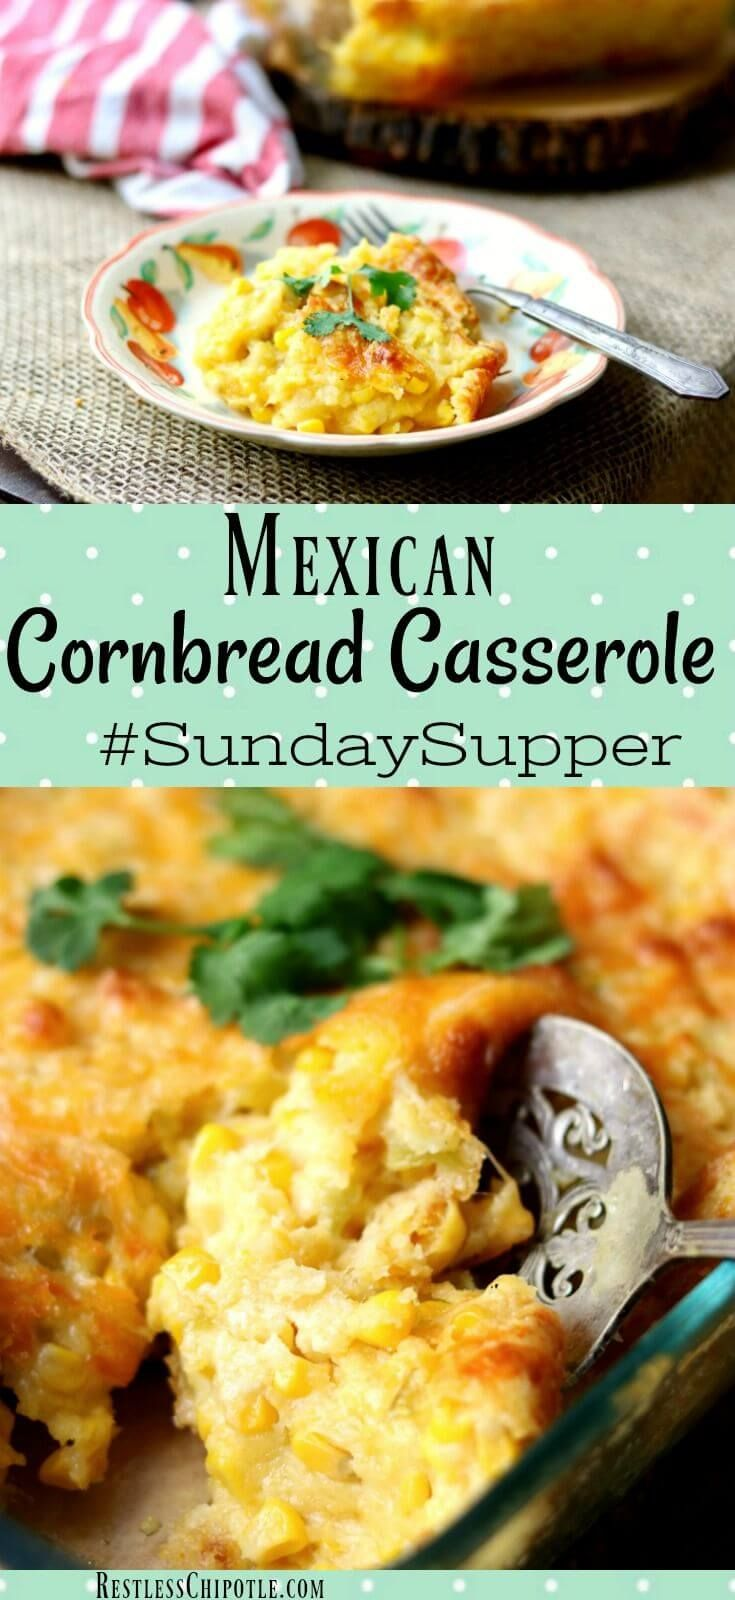 Quick and easy, this Mexican cornbread casserole recipe is a Southern tradition during the holidays. Now updated with Southwestern flavors! Make ahead recipe. #sundaysupper #sidedishes #holidayrecipes via @Marye at Restless Chipotle